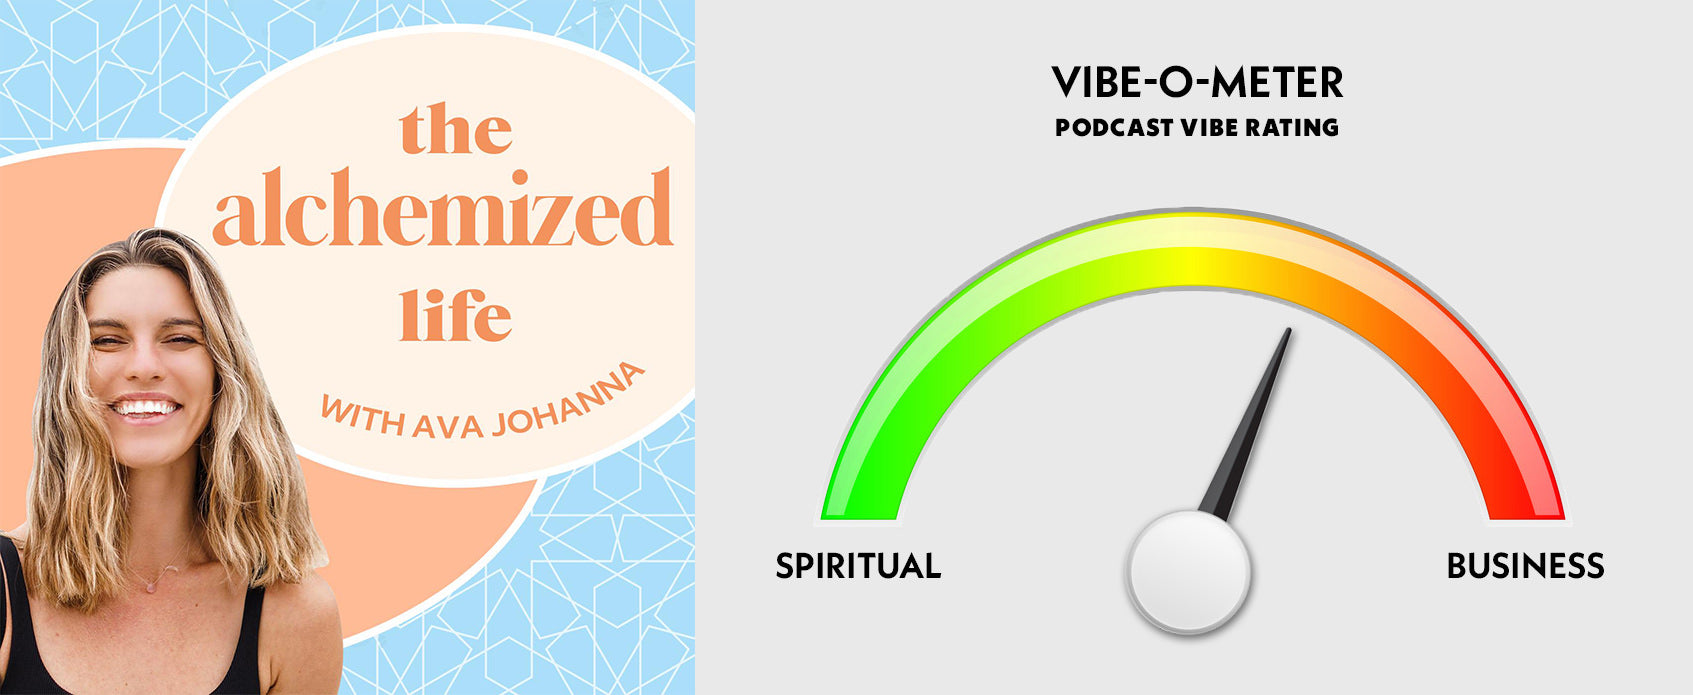 The Alchemized Life podcast rating